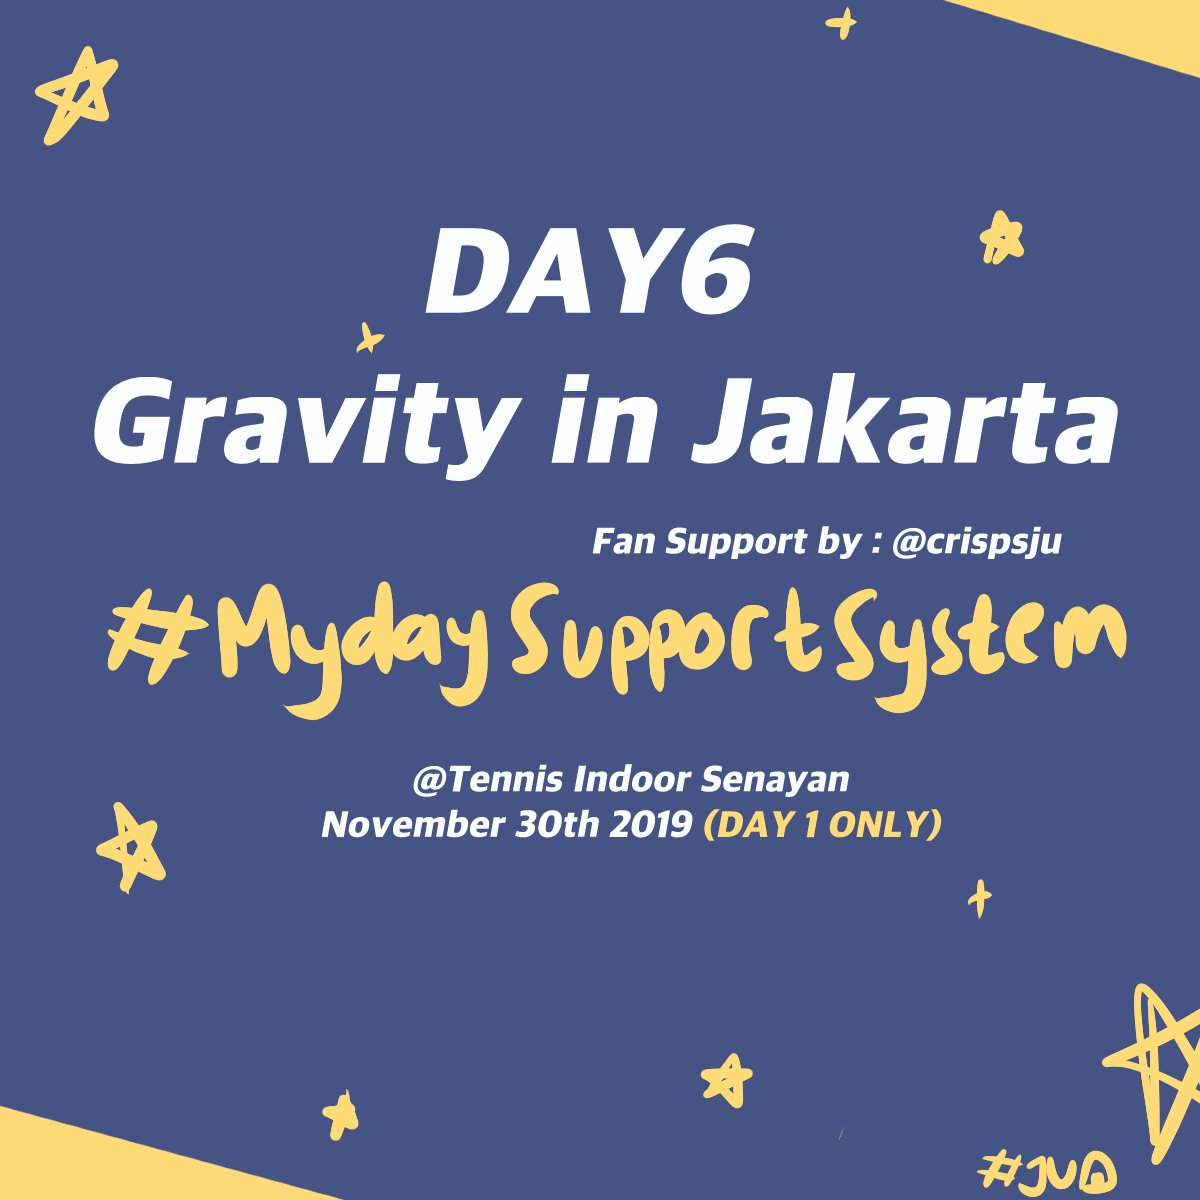 [HELP RT] Day6 Gravity in JKT FanSupport  i will be giving away some free denimalz fanart set on the venue!    Tennis Indoor Senayan  November 30th, 2019   TBA  Limited stock, More details will be updated belowsee you there!  #DAY6  #Day6GravityinJKT #GRAVITYinJKT<br>http://pic.twitter.com/DrxvkNlESJ